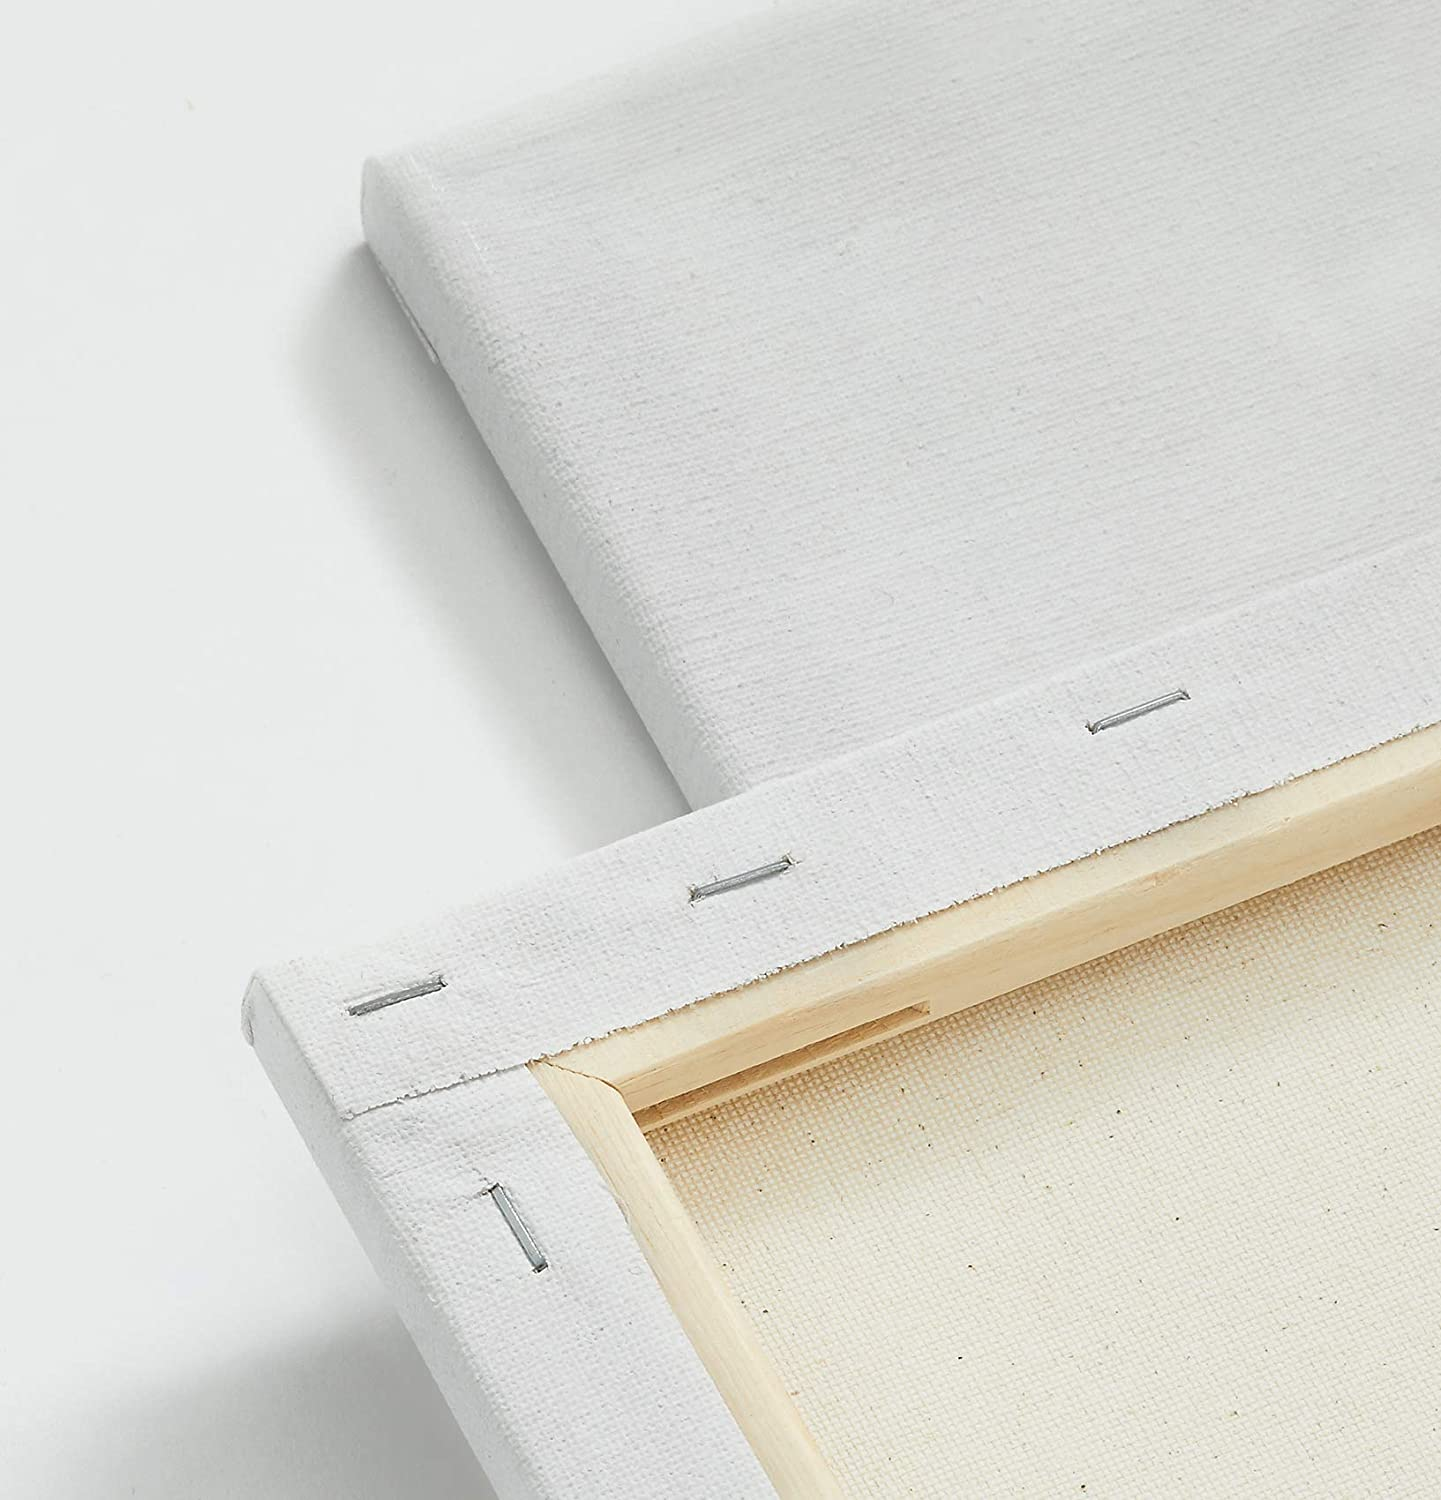 miniature 5 - Americanflat Stretched Canvas in White 100% Cotton Wooden Frames & Acid Free